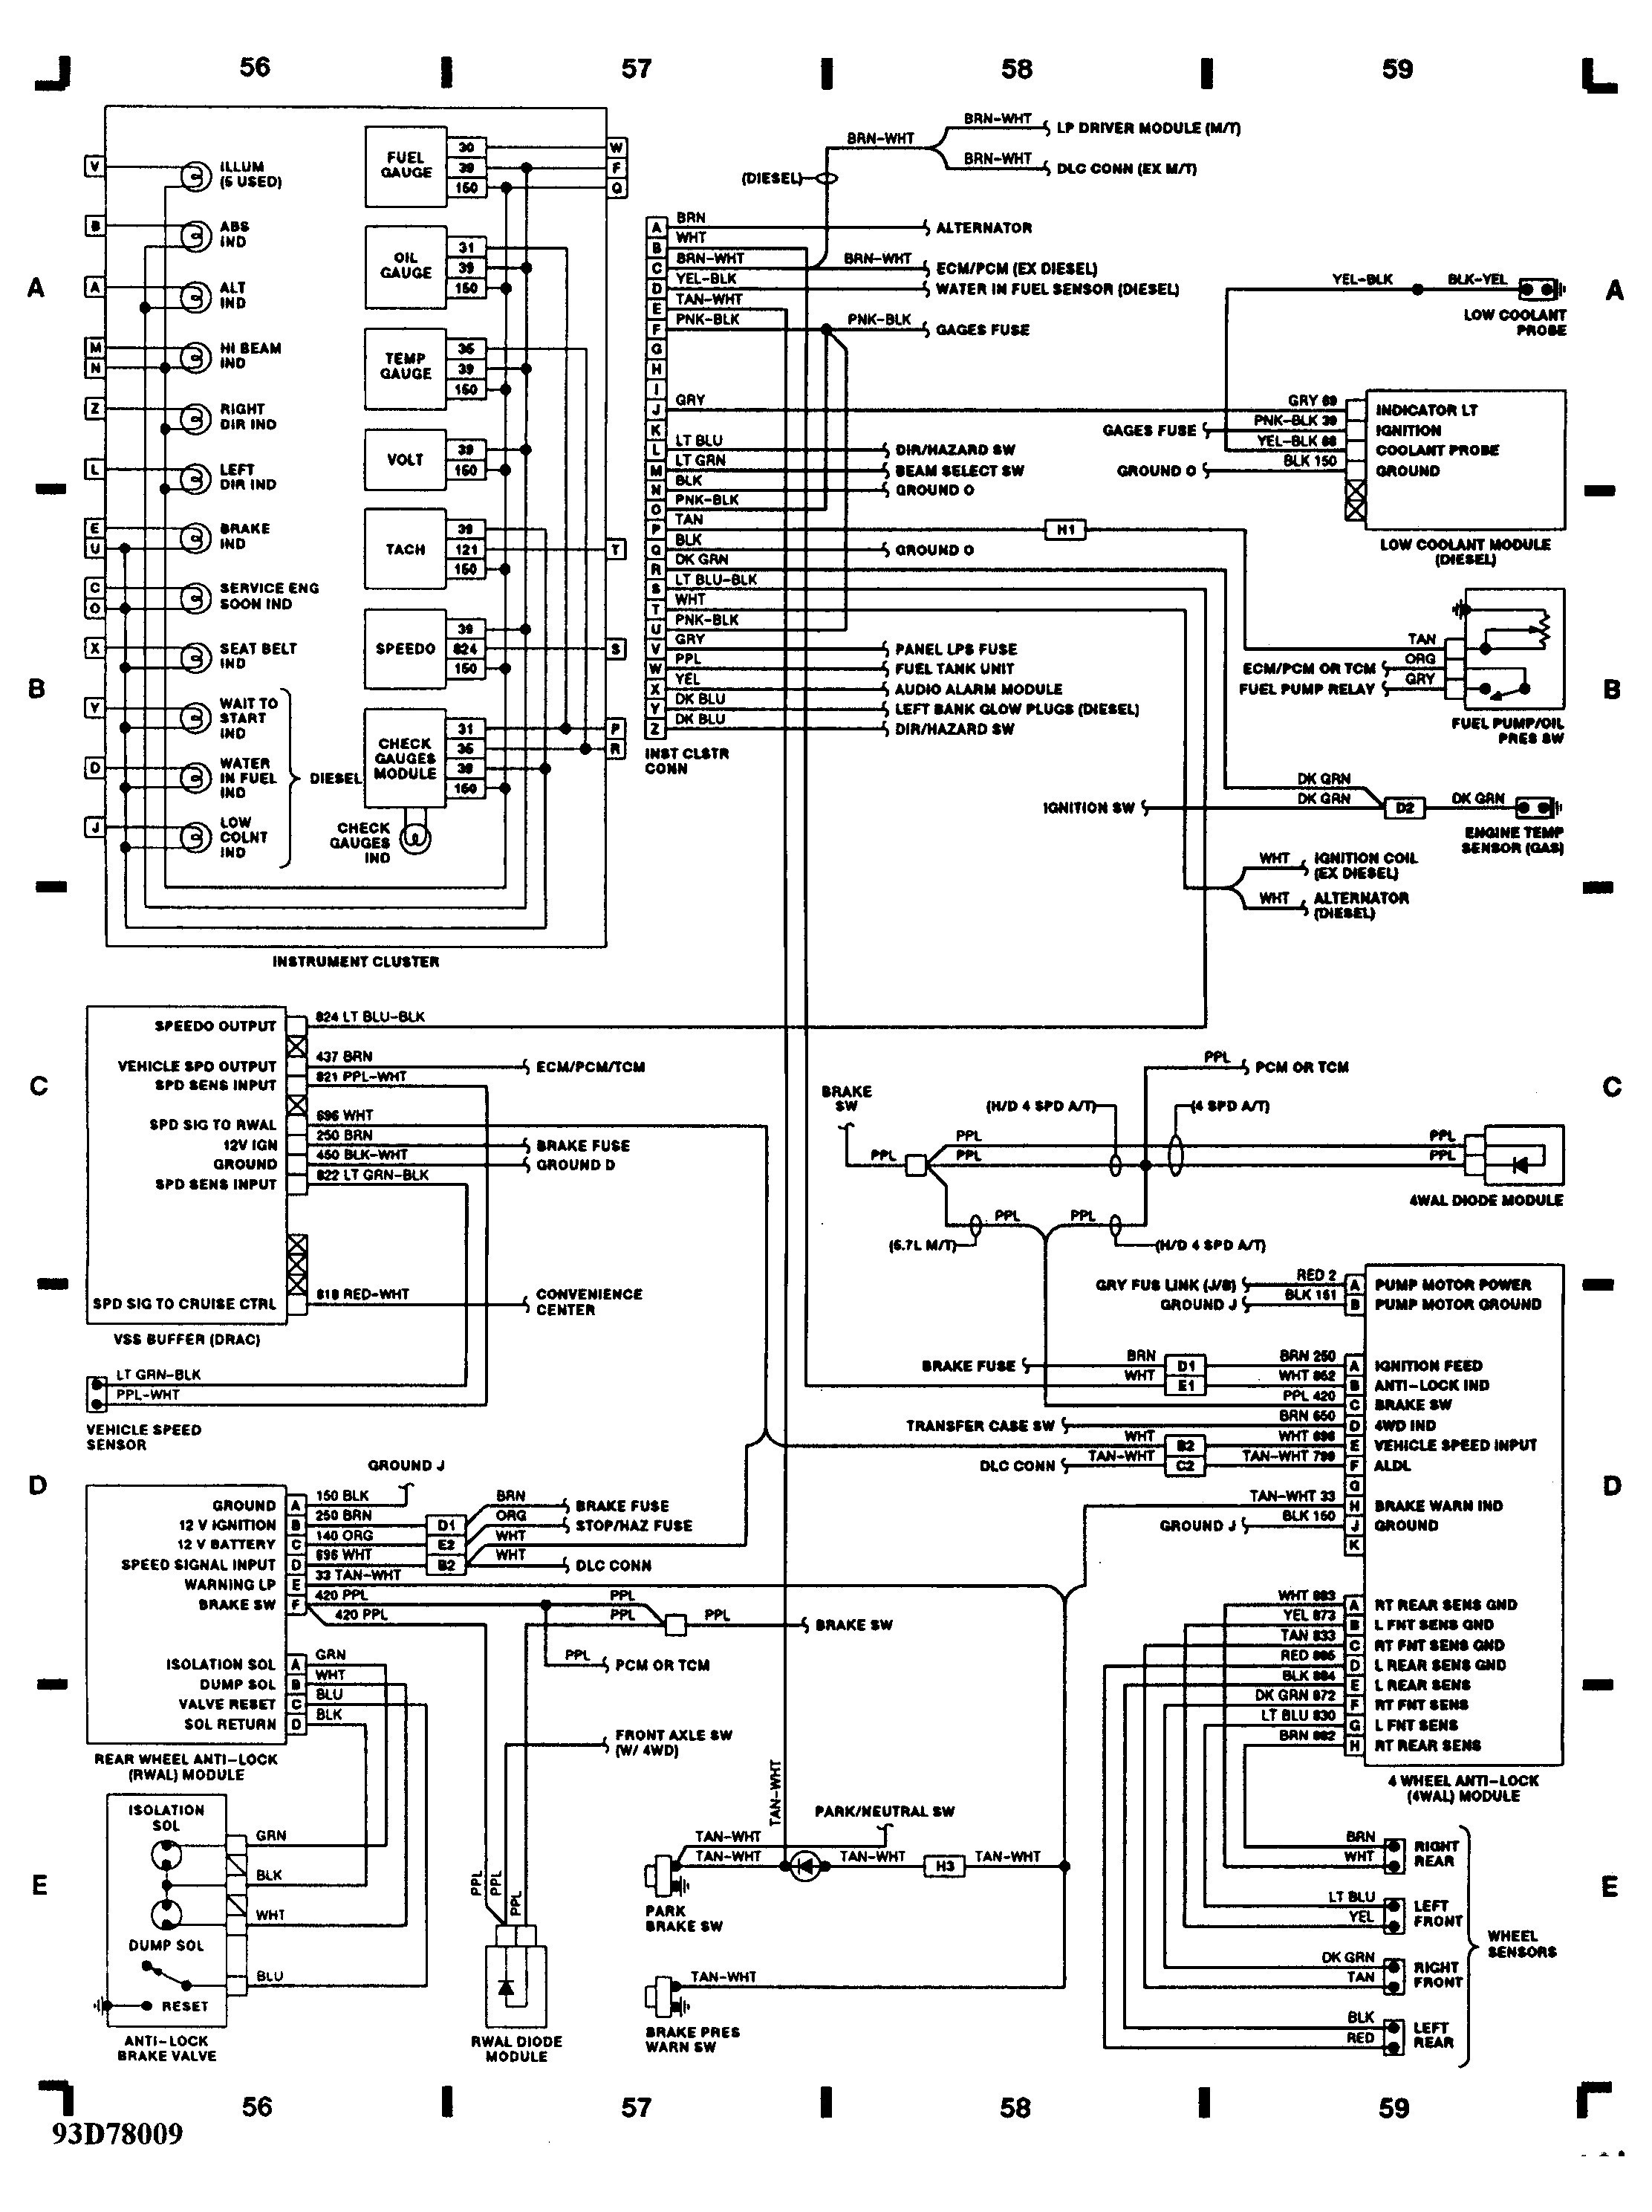 4 3l Mercruiser Wiring Diagram | Online Wiring Diagram  L Mercruiser Wiring Schematic on